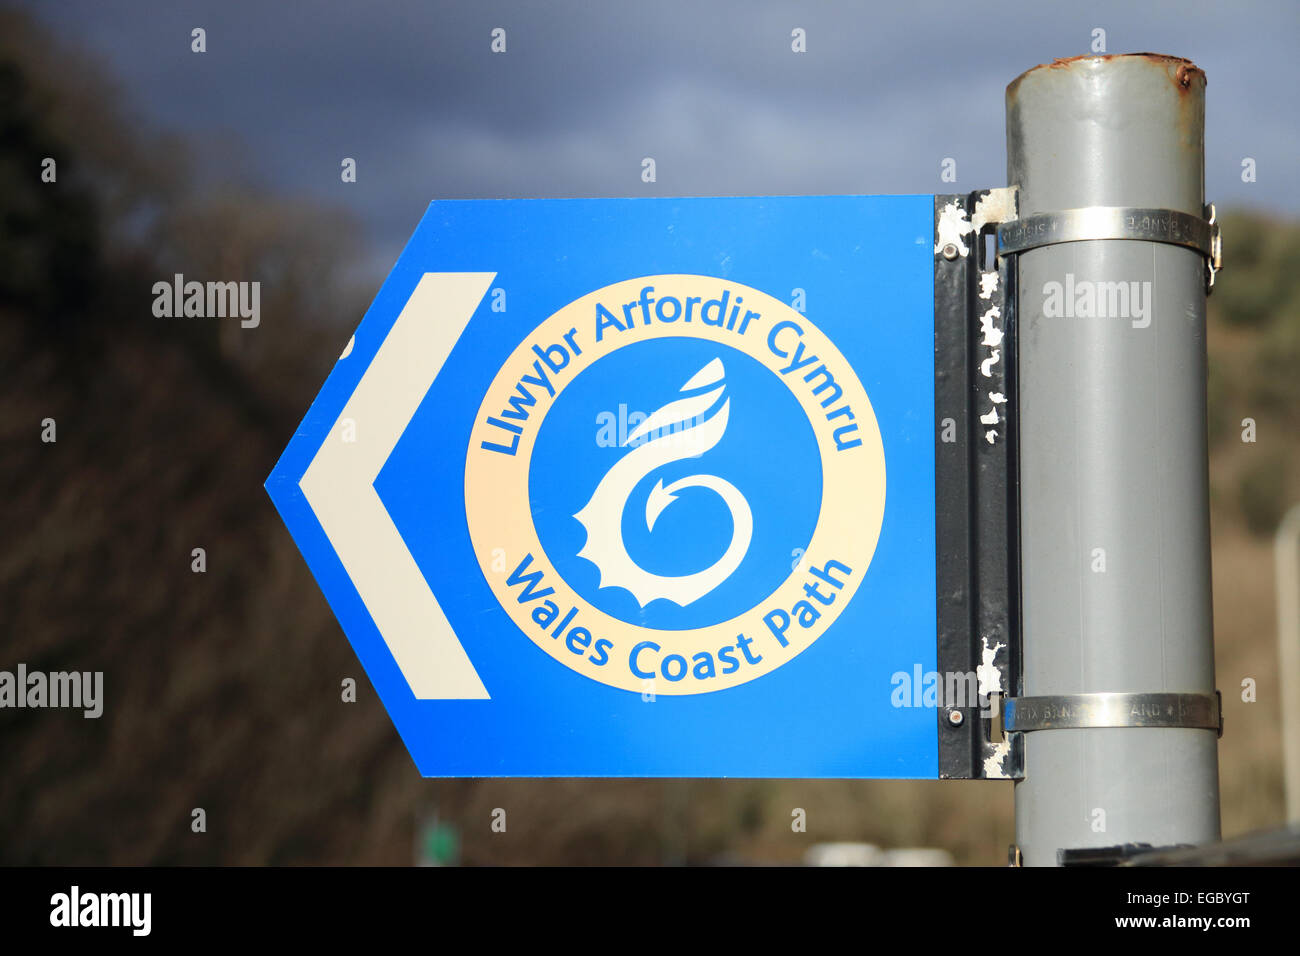 Wales Coast Path blue direction sign Caswell Bay Gower South Wales UK - Stock Image